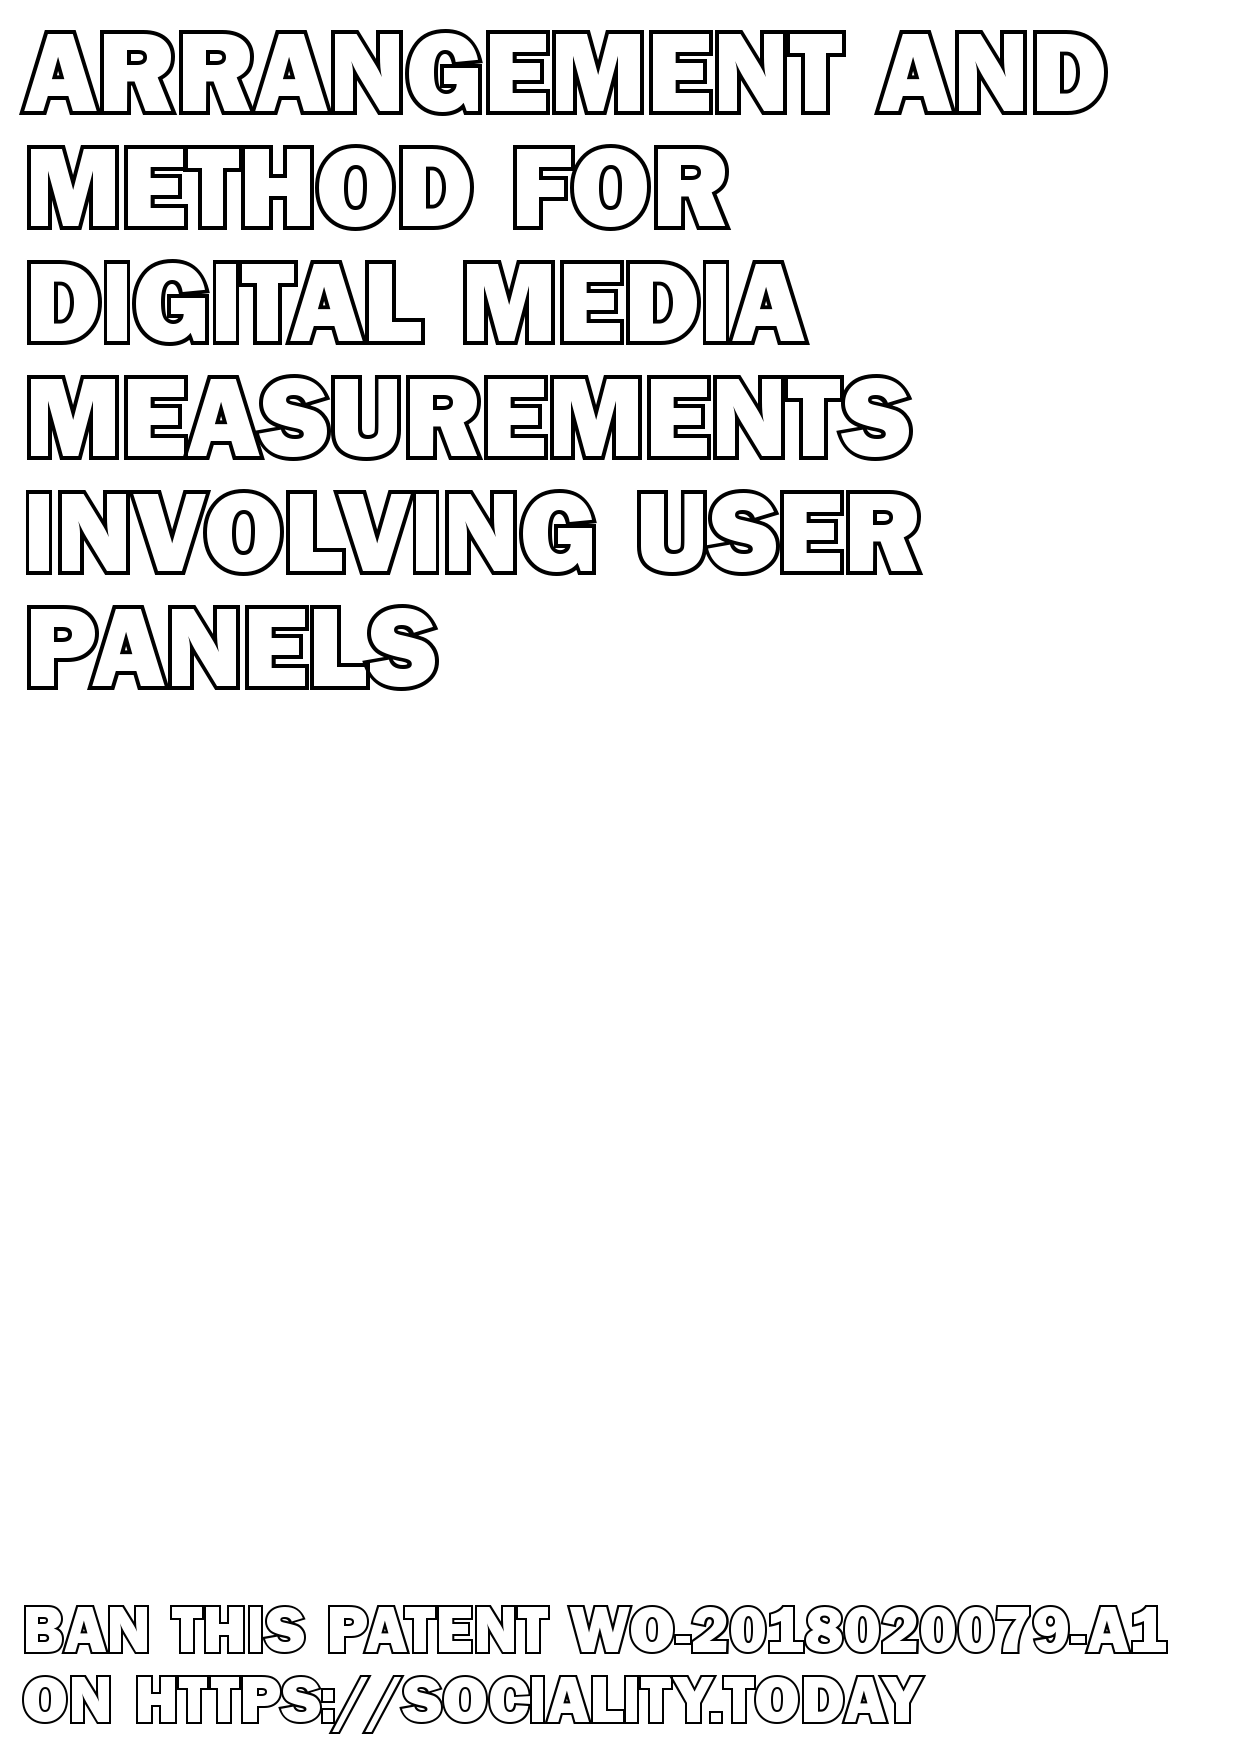 Arrangement and method for digital media measurements involving user panels  - WO-2018020079-A1